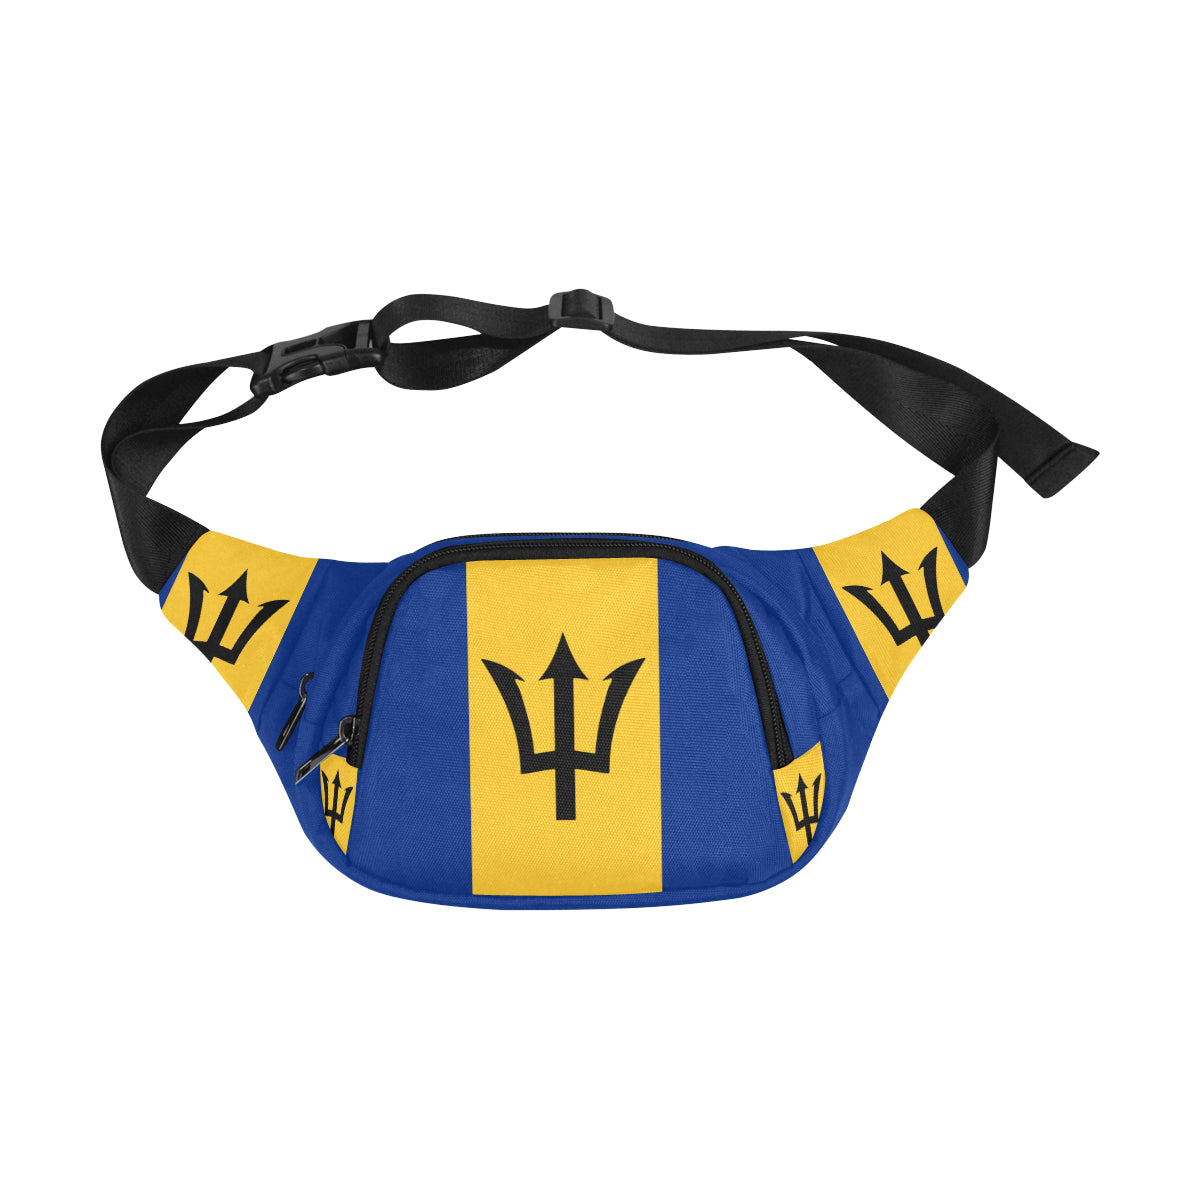 Barbados Born Fanny Pack/Small